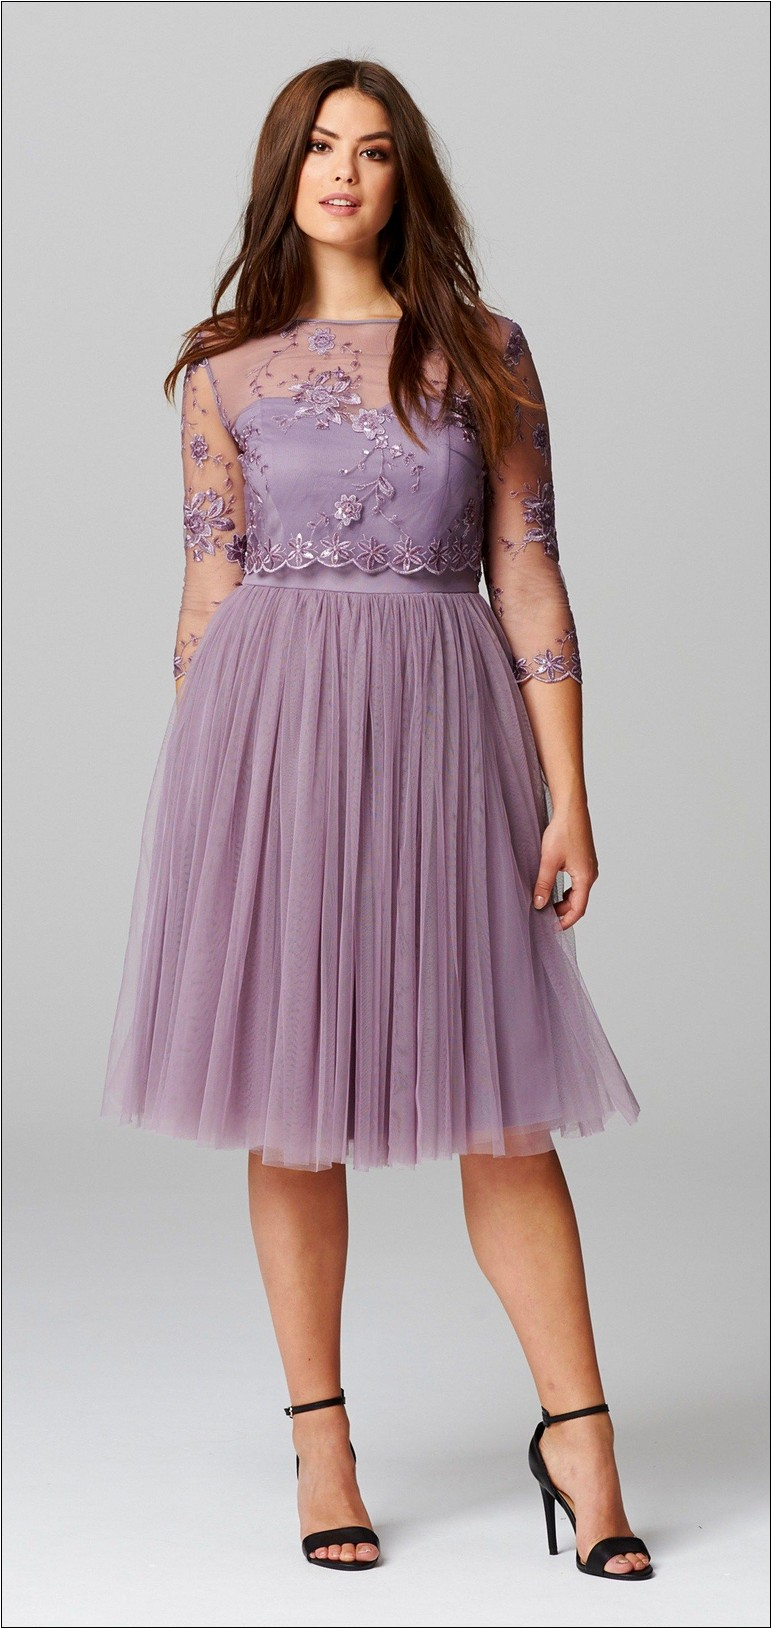 plus size dresses for wedding guests photo - 1